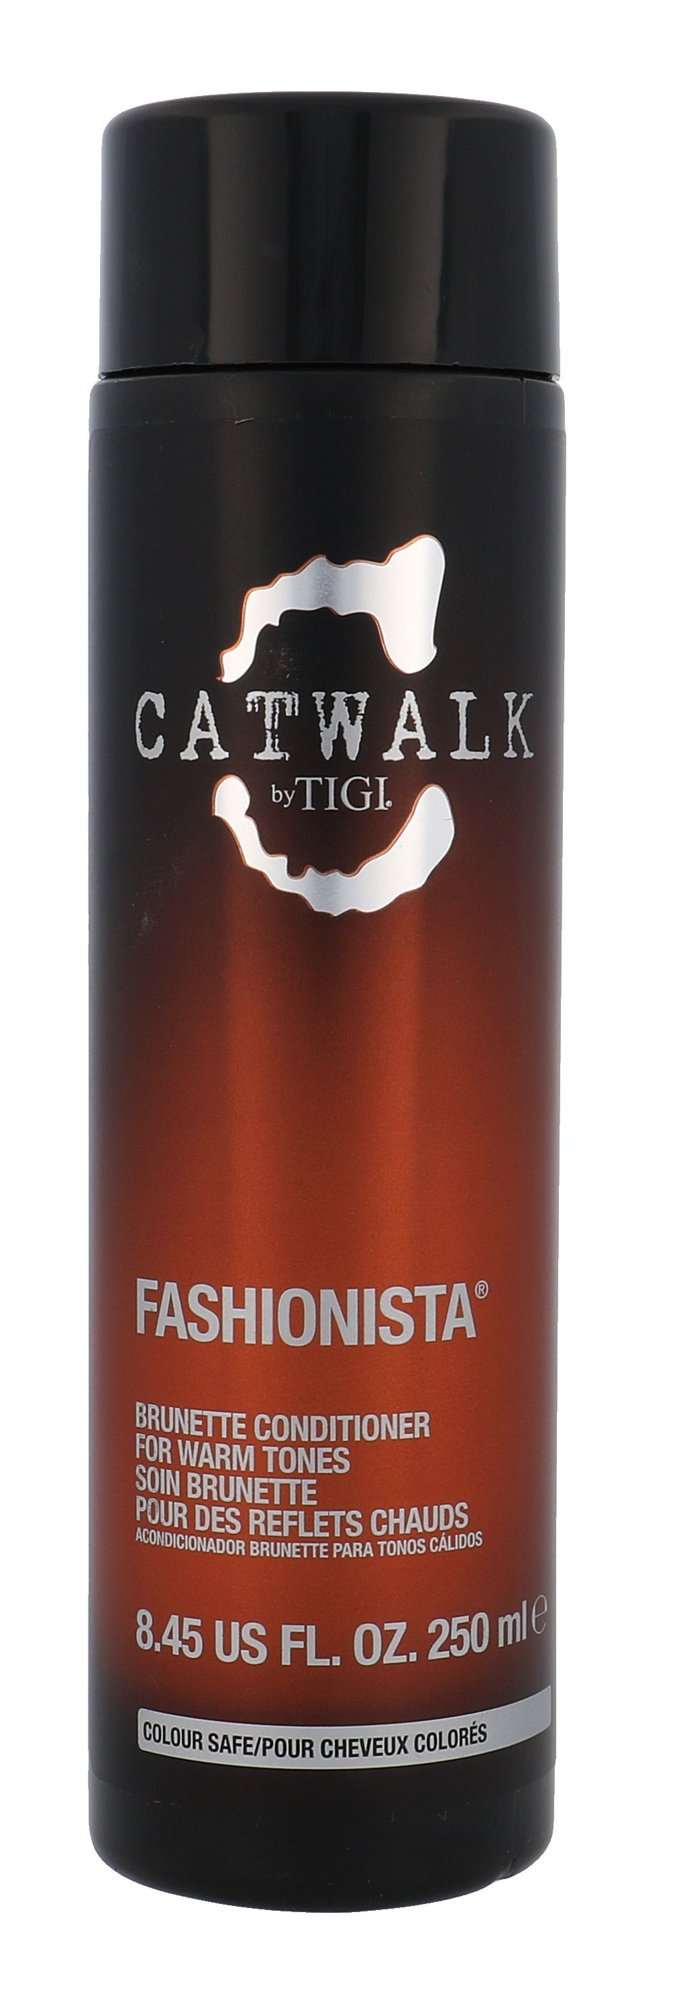 Tigi Catwalk Fashionista Cosmetic 250ml